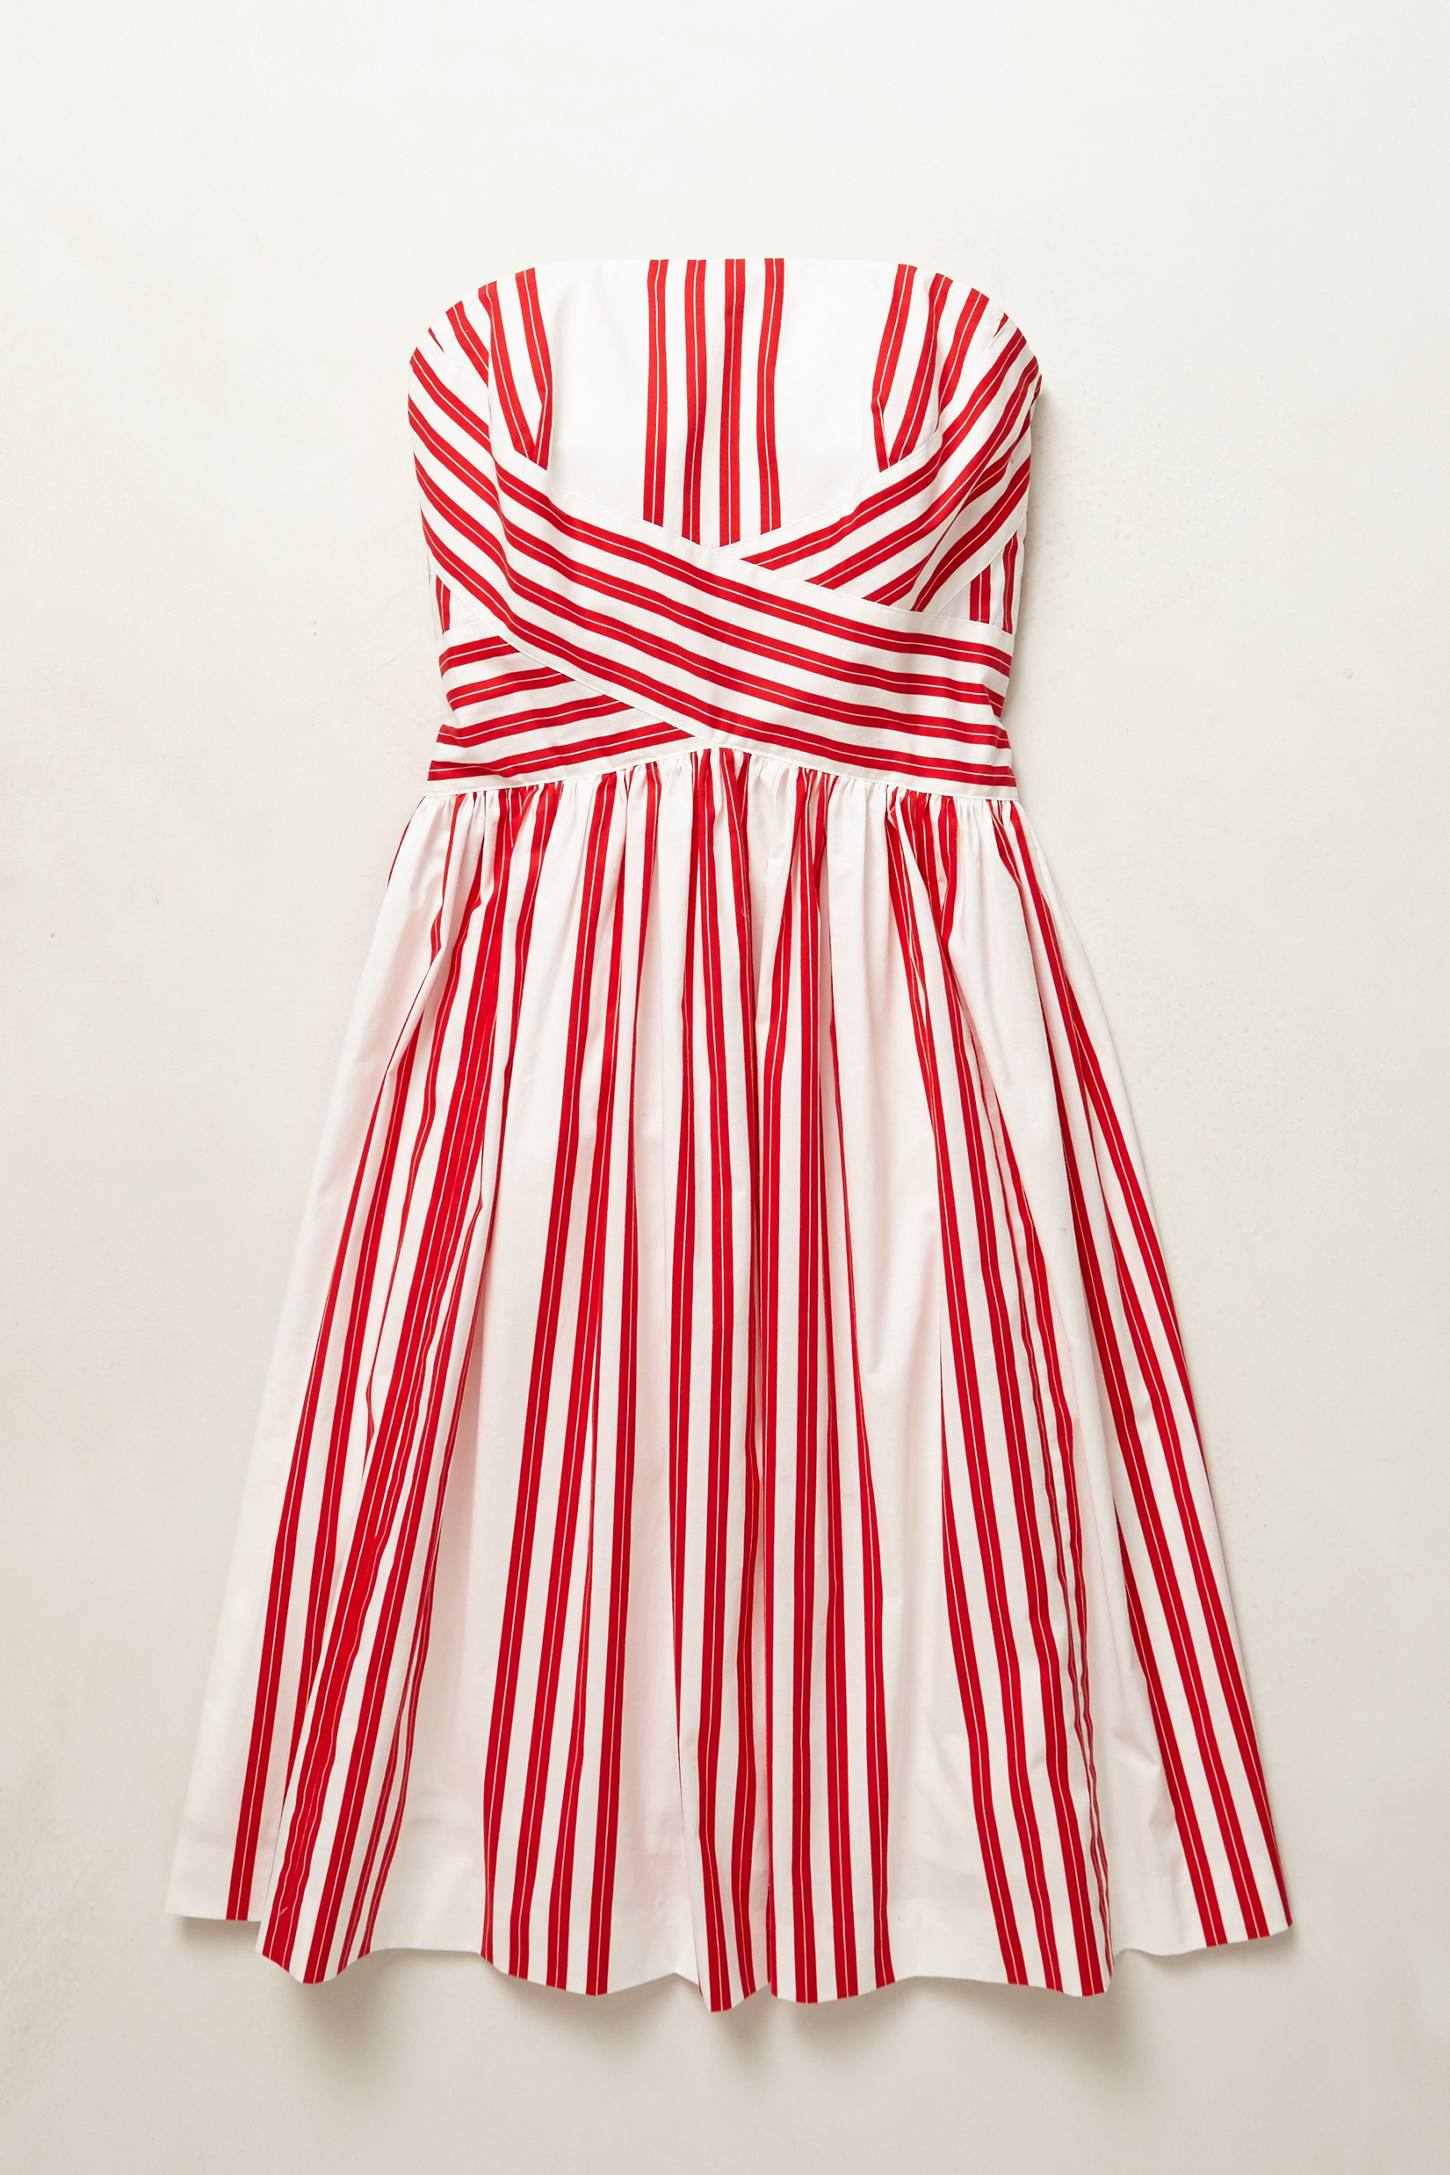 Archival Collection: Striped Dress